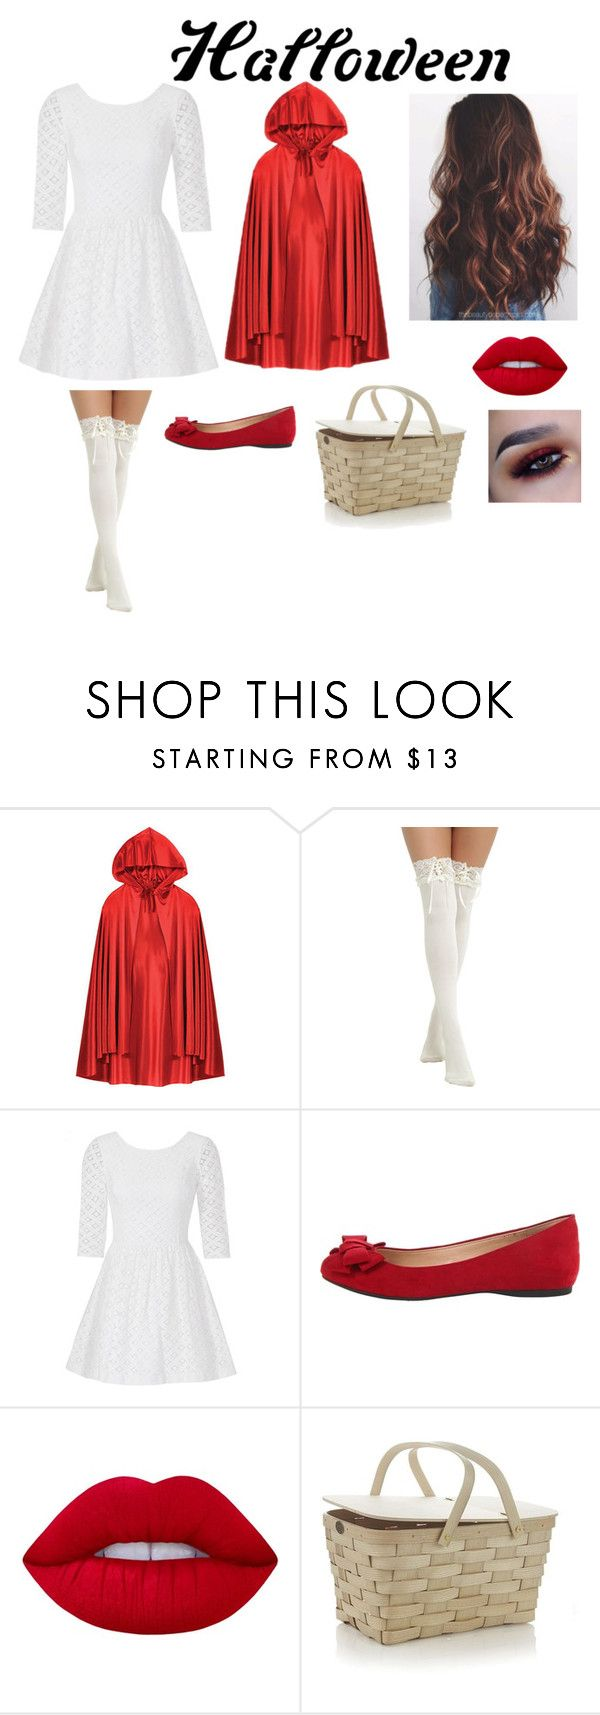 """Little red riding hood : DIY"" by ericalight ❤ liked on Polyvore featuring Lilly Pulitzer, Jessica Simpson, Lime Crime, Crate and Barrel, halloweencostume and DIYHalloween"